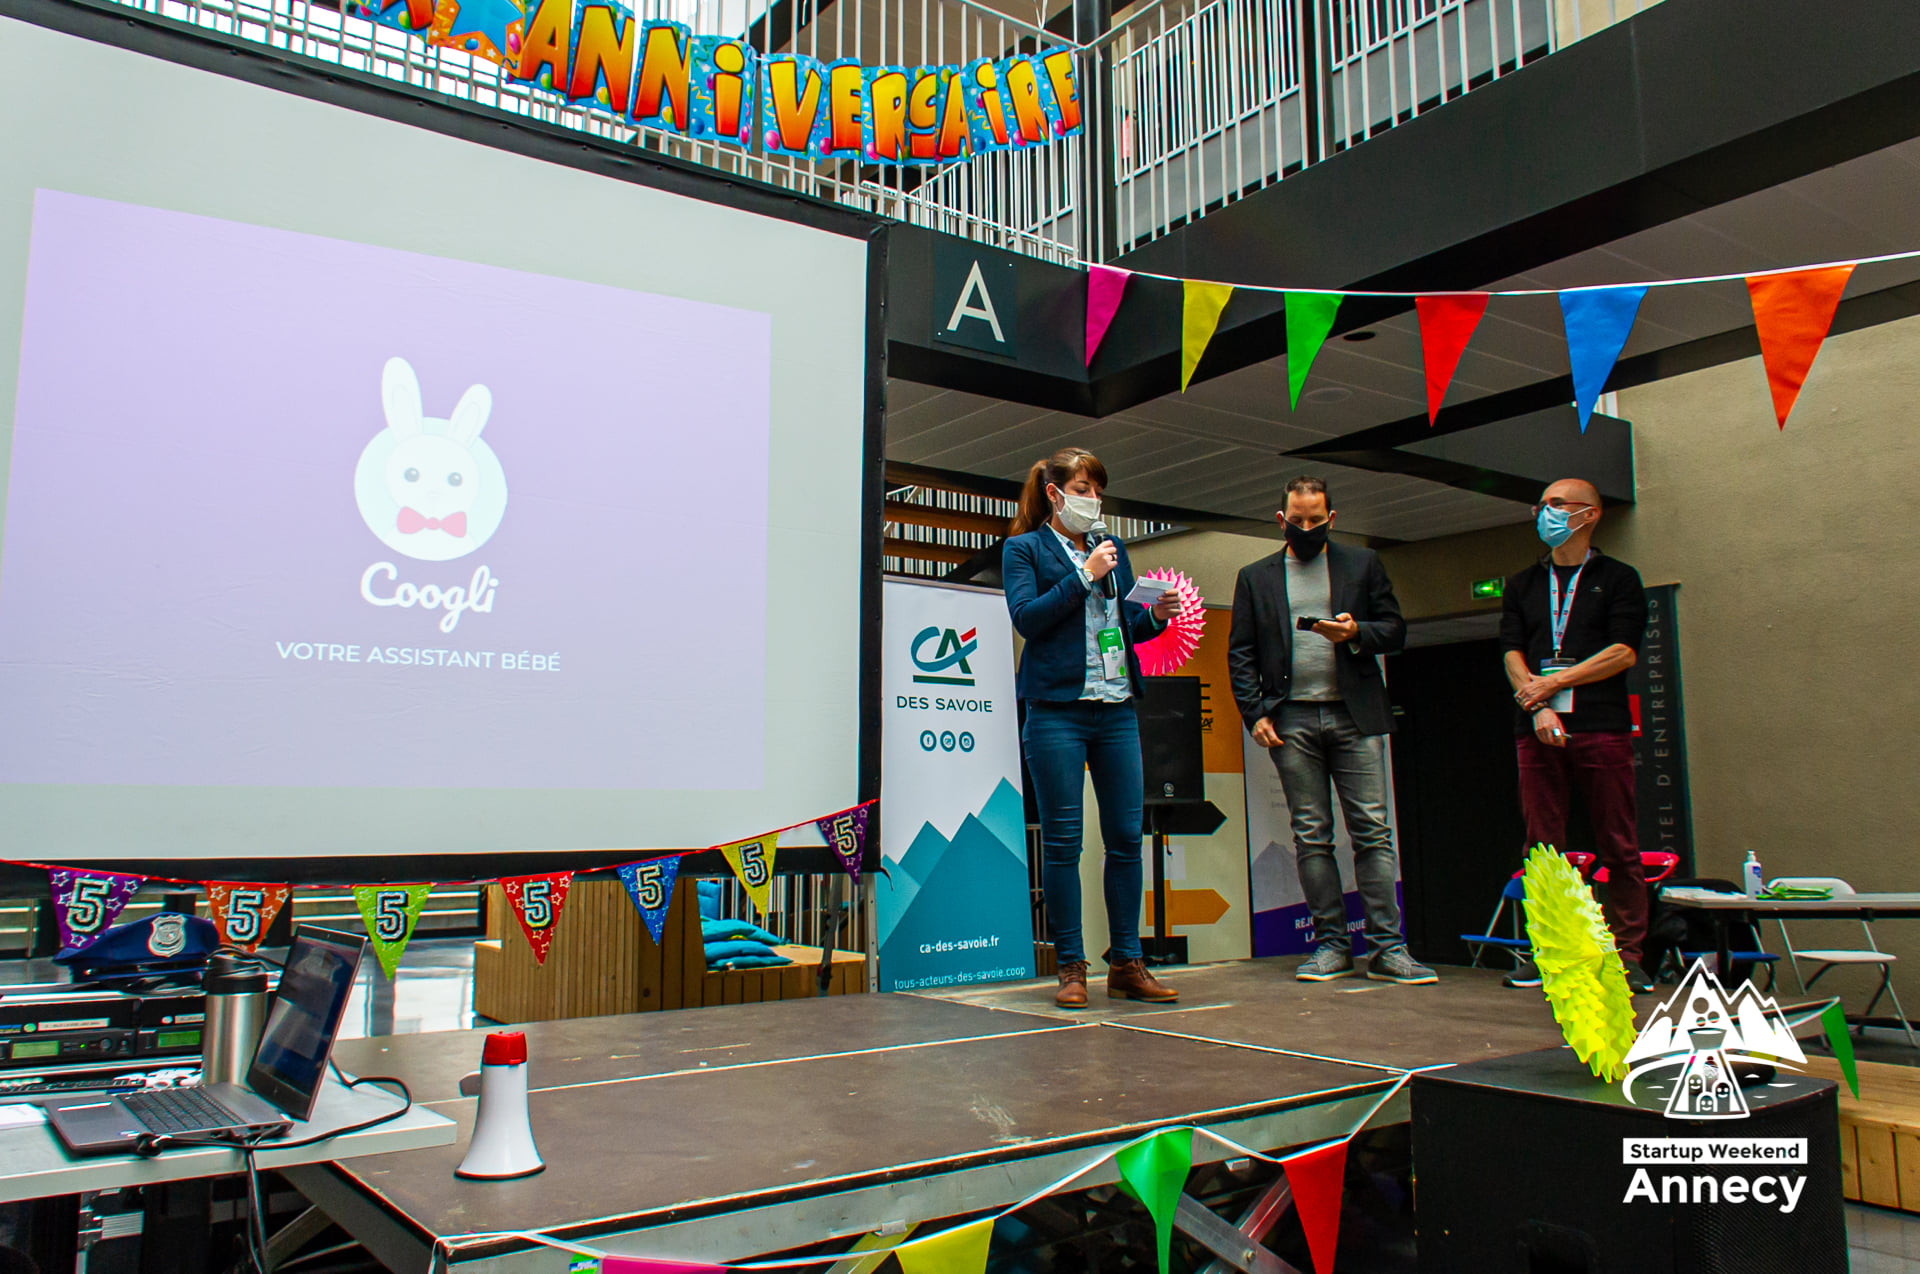 Application mobile jeunes parents, startup week-end annecy, Coogli